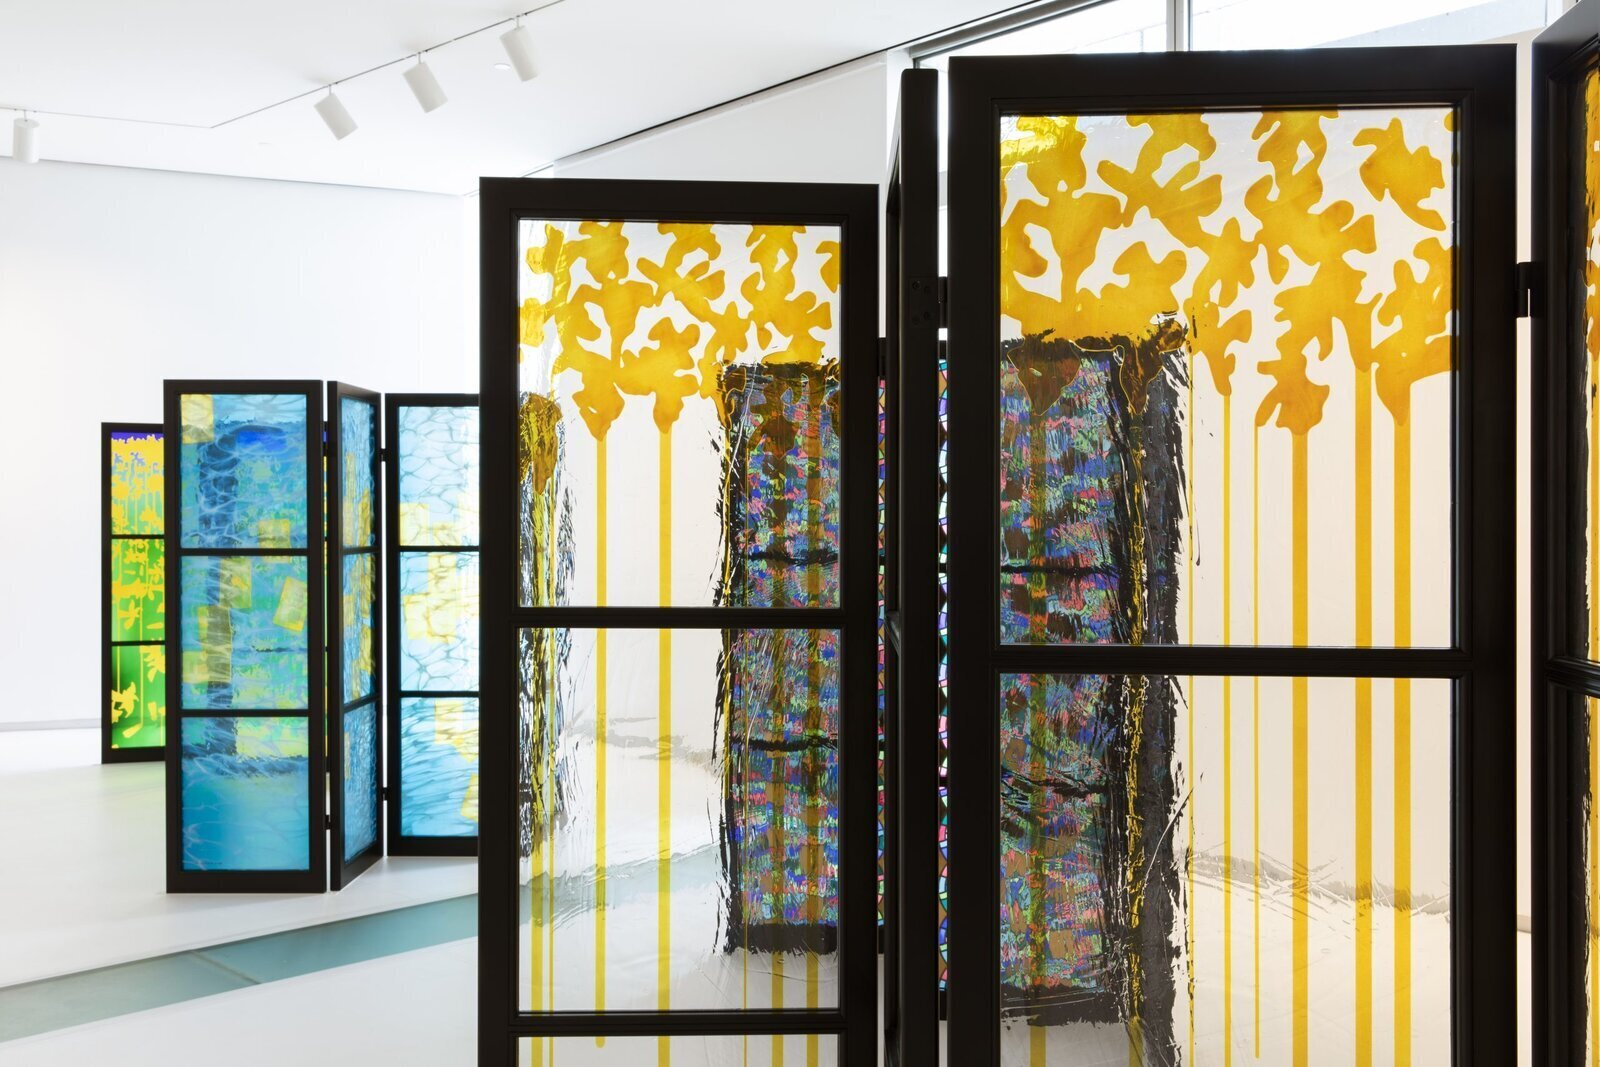 Brian Clarke is one of the world's most esteemed artists working with stained glass today. In the comprehensive exhibition Brian Clarke: The Art of Light at the Museum of Arts and Design in New York (through February 21, 2021), which also includes compositions in lead and related drawings, more than 20 of the Brit's free-standing glass screens, their saturated colors playing with light, take center stage.  Photo 6 of 17 in 16 Essential Design Events to Catch This Fall